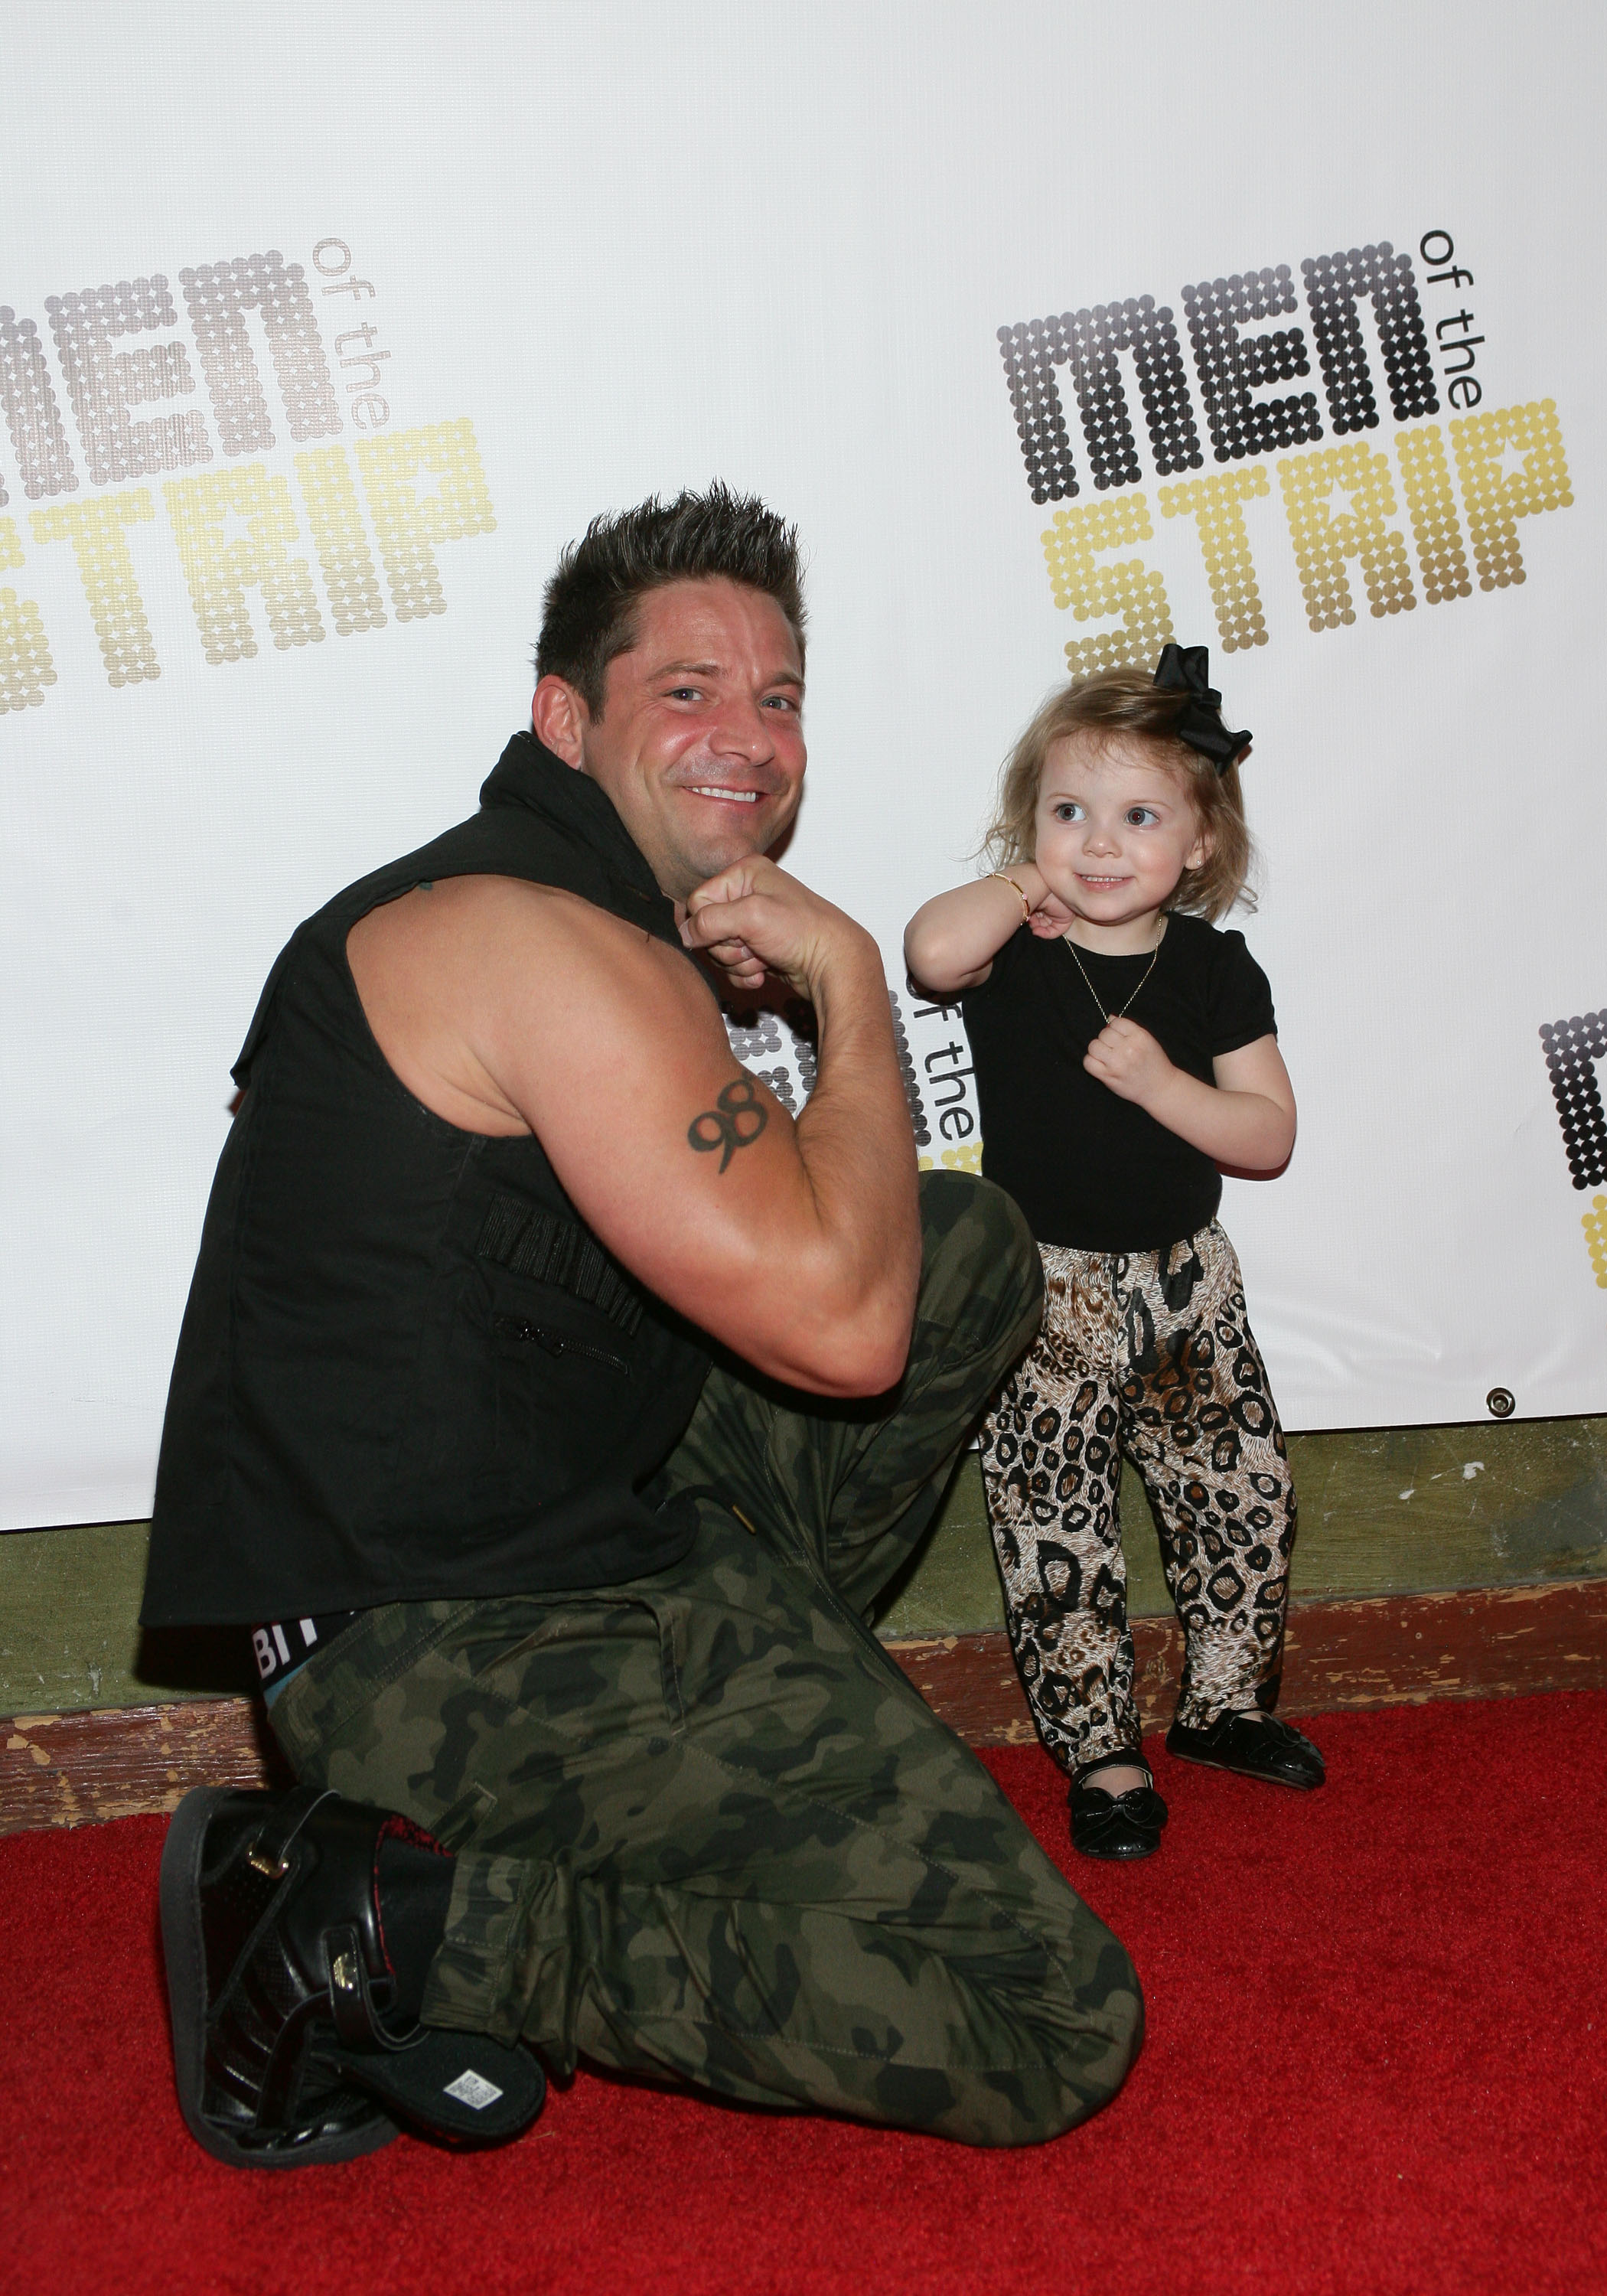 "Jeff Timmon of  ""Men of the Strip"" fame with his daughter Ariahuna, at House of Blues at Mandalay Bay in Las Vegas on March 29."